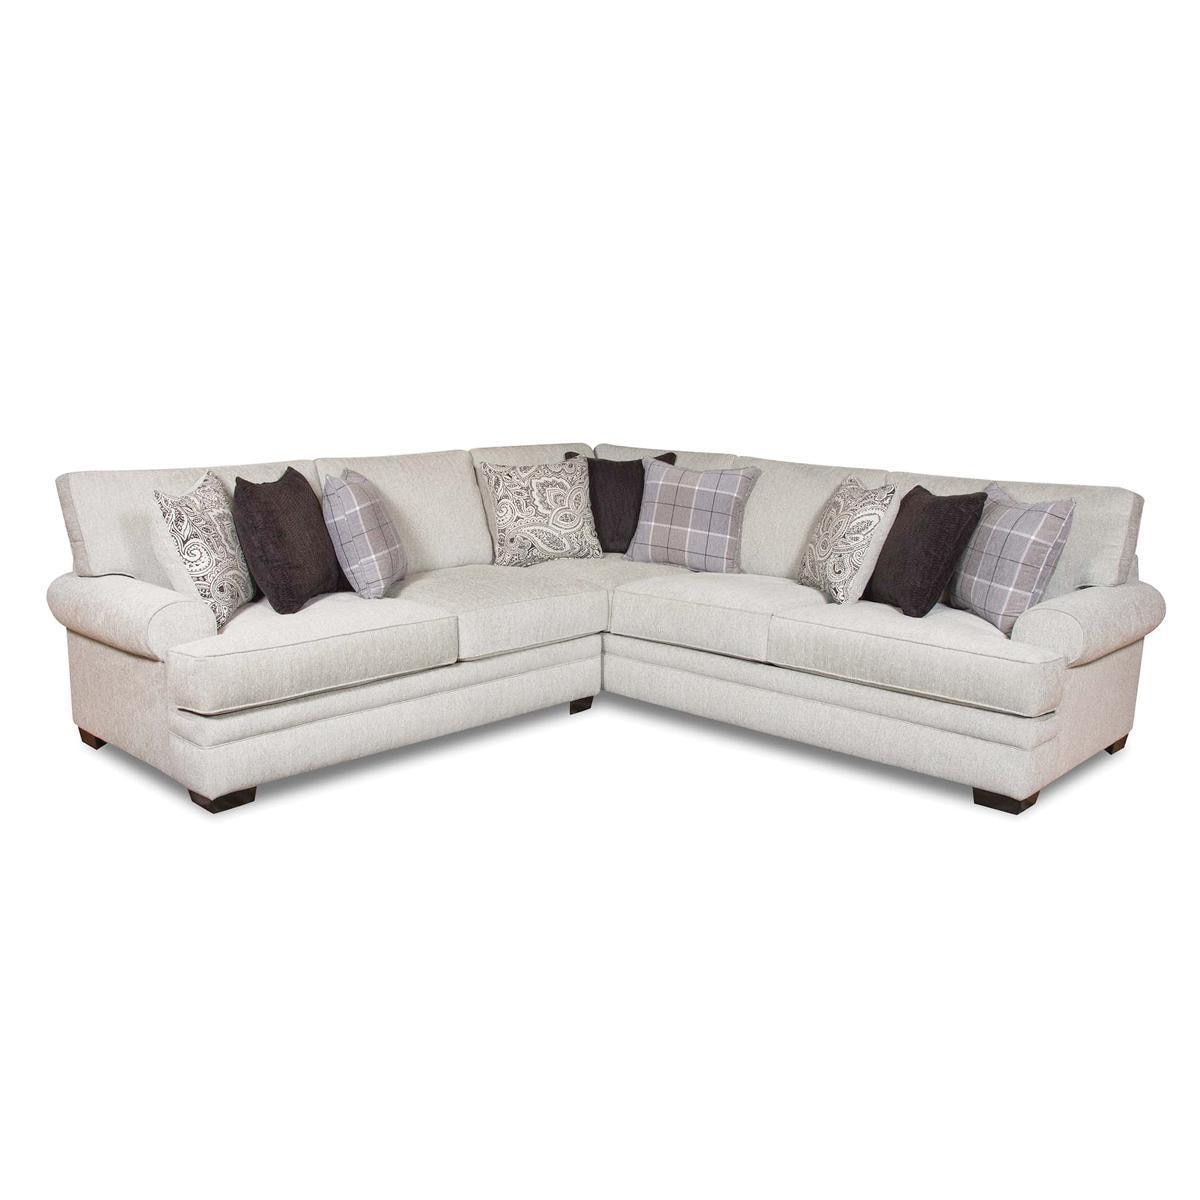 Groovy Henderson 2 Piece Sectional In Griffin Menswear Nebraska Ocoug Best Dining Table And Chair Ideas Images Ocougorg